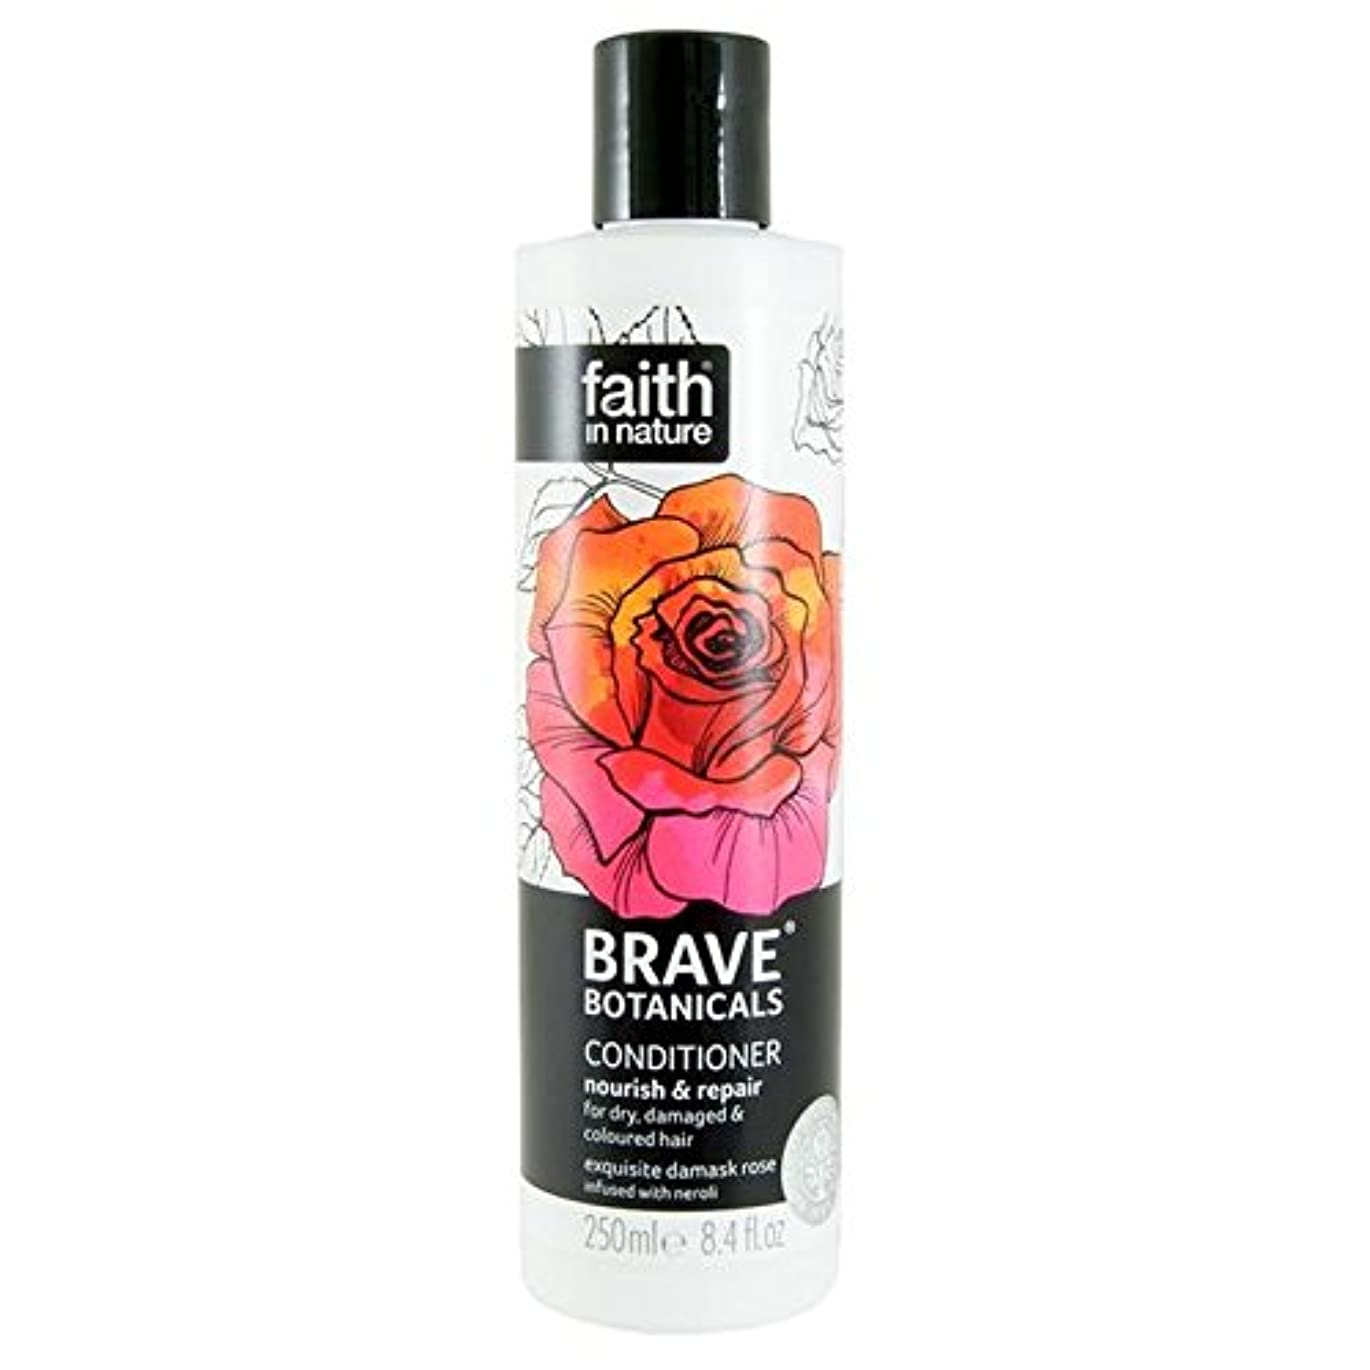 時間とともに引き算野ウサギBrave Botanicals Rose & Neroli Nourish & Repair Conditioner 250ml (Pack of 4) - (Faith In Nature) 勇敢な植物は、ローズ&ネロリ...